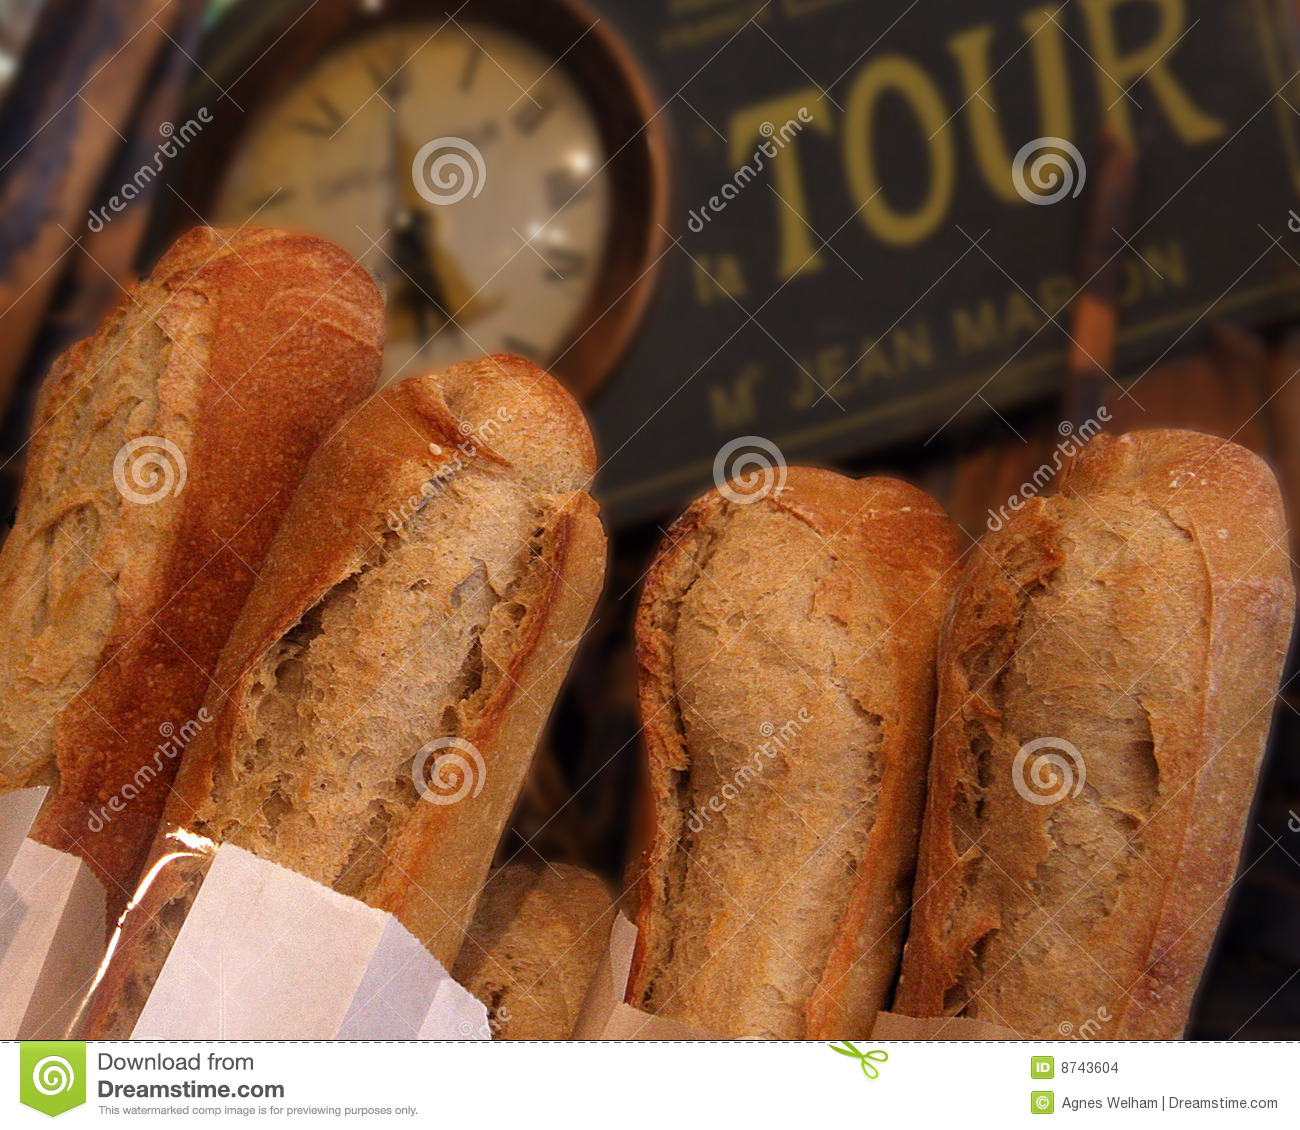 Fresh Crusty Baguette in a French Cafe.